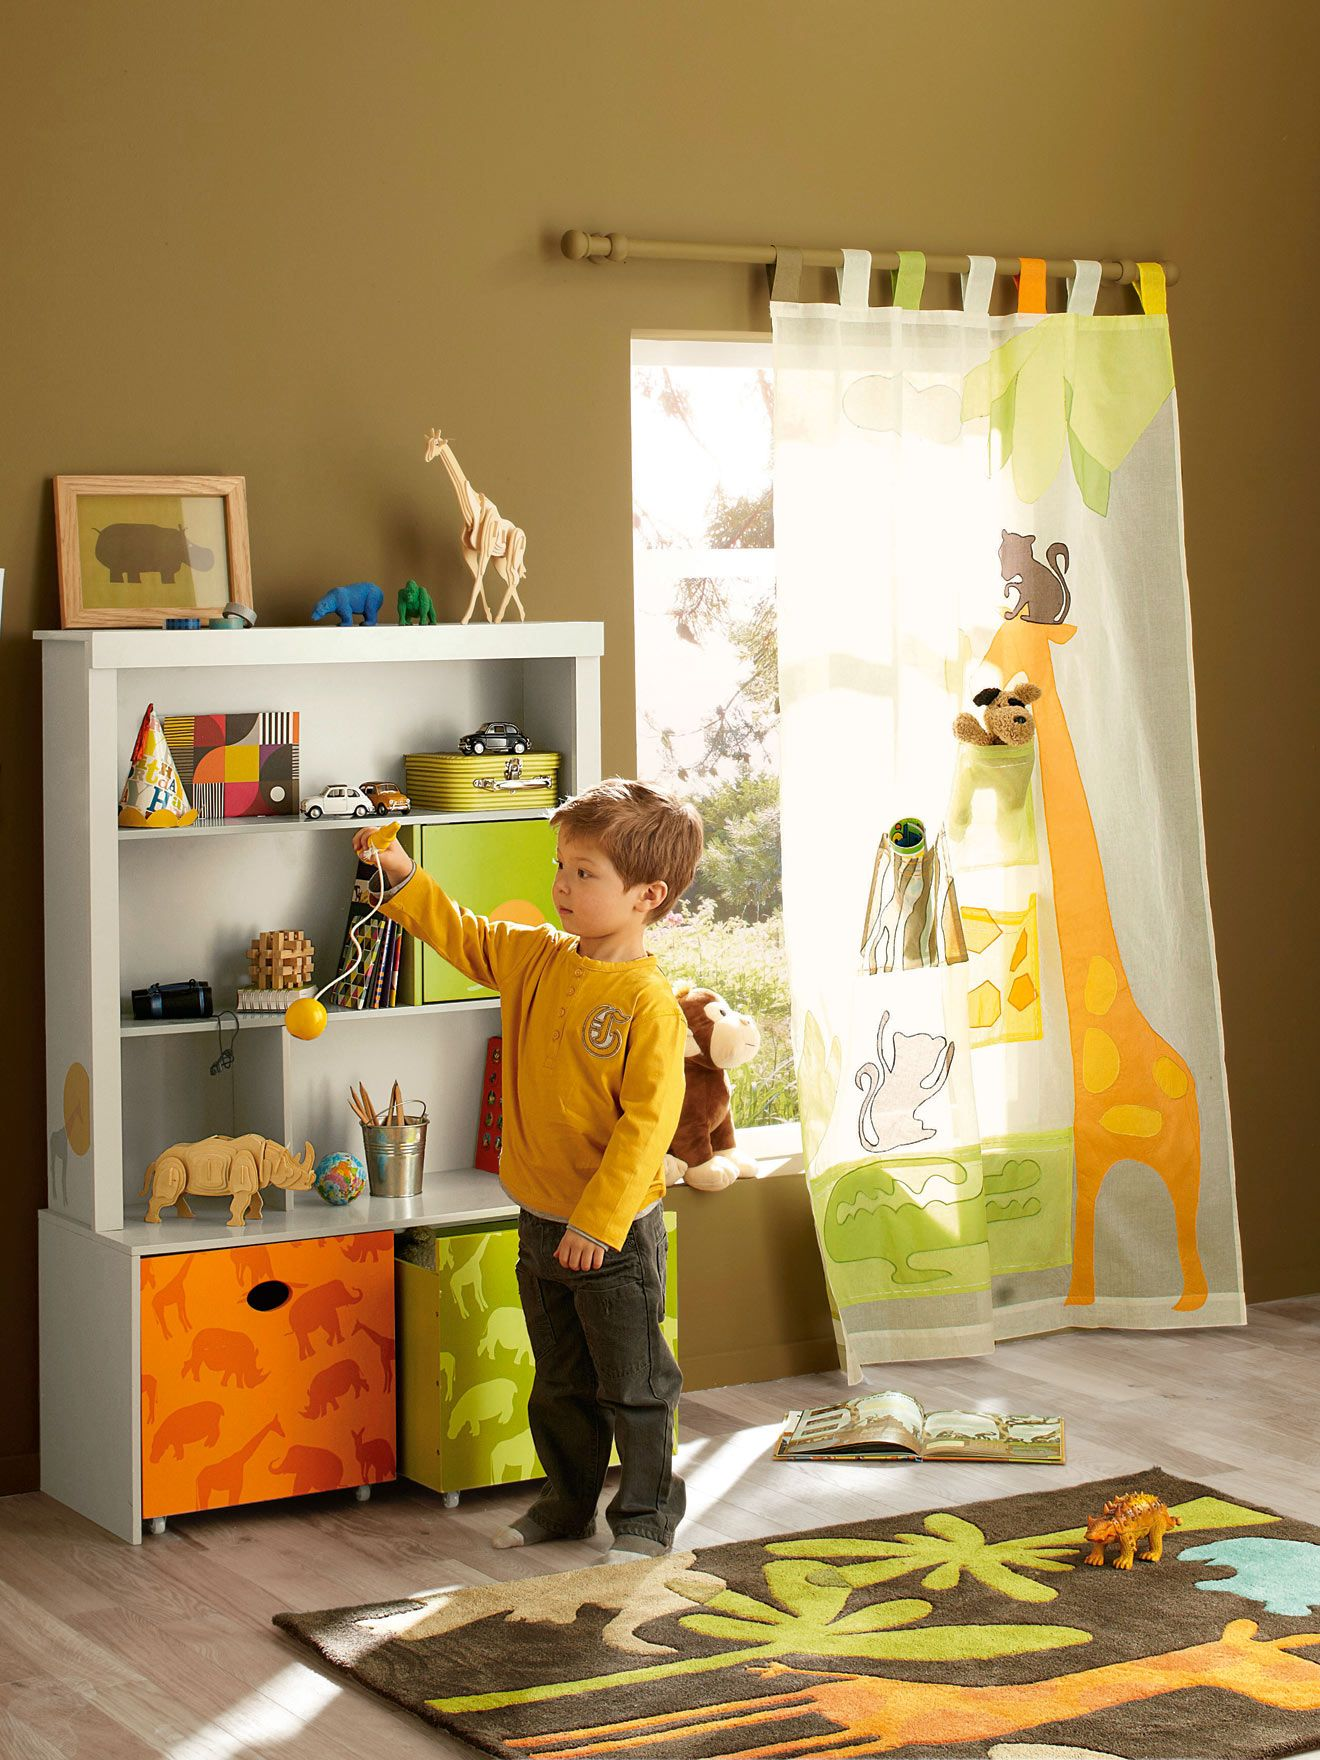 une chambre d 39 enfant qui aime les animaux et la savane. Black Bedroom Furniture Sets. Home Design Ideas